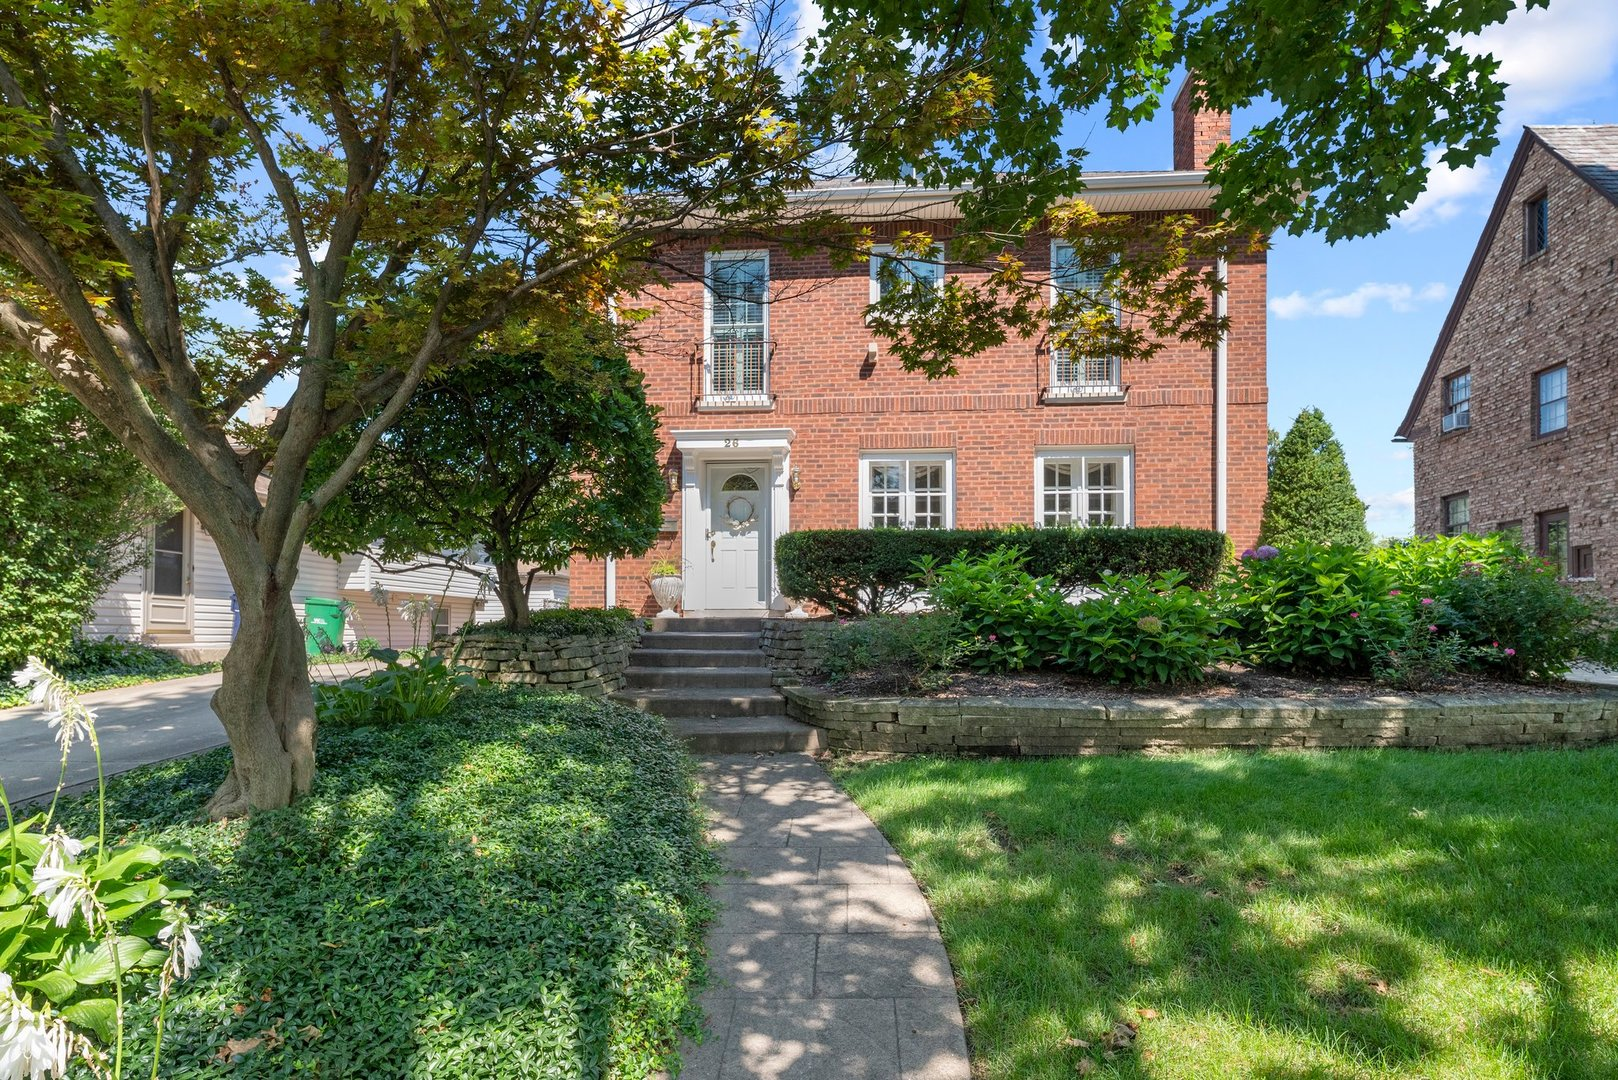 """Awesome Red Brick French Georgian on a tree lined street is just what you've been waiting for. Living room with hardwood floors and a wood burning fireplace. Separate dining room opens onto a Trek deck and brick patio. Office on the main floor plus 3 bedrooms upstairs. Stainless appliances. Large main bedroom has its own bath.  New Pella windows 2016 & 2019.  Full basement is partially finished. Hot water heat with space pac for air conditioning (2010). Just a few blocks from Pleasant Lane school. Bring your decorating ideas, this home is being sold """"as is"""" but has lots of charm!"""